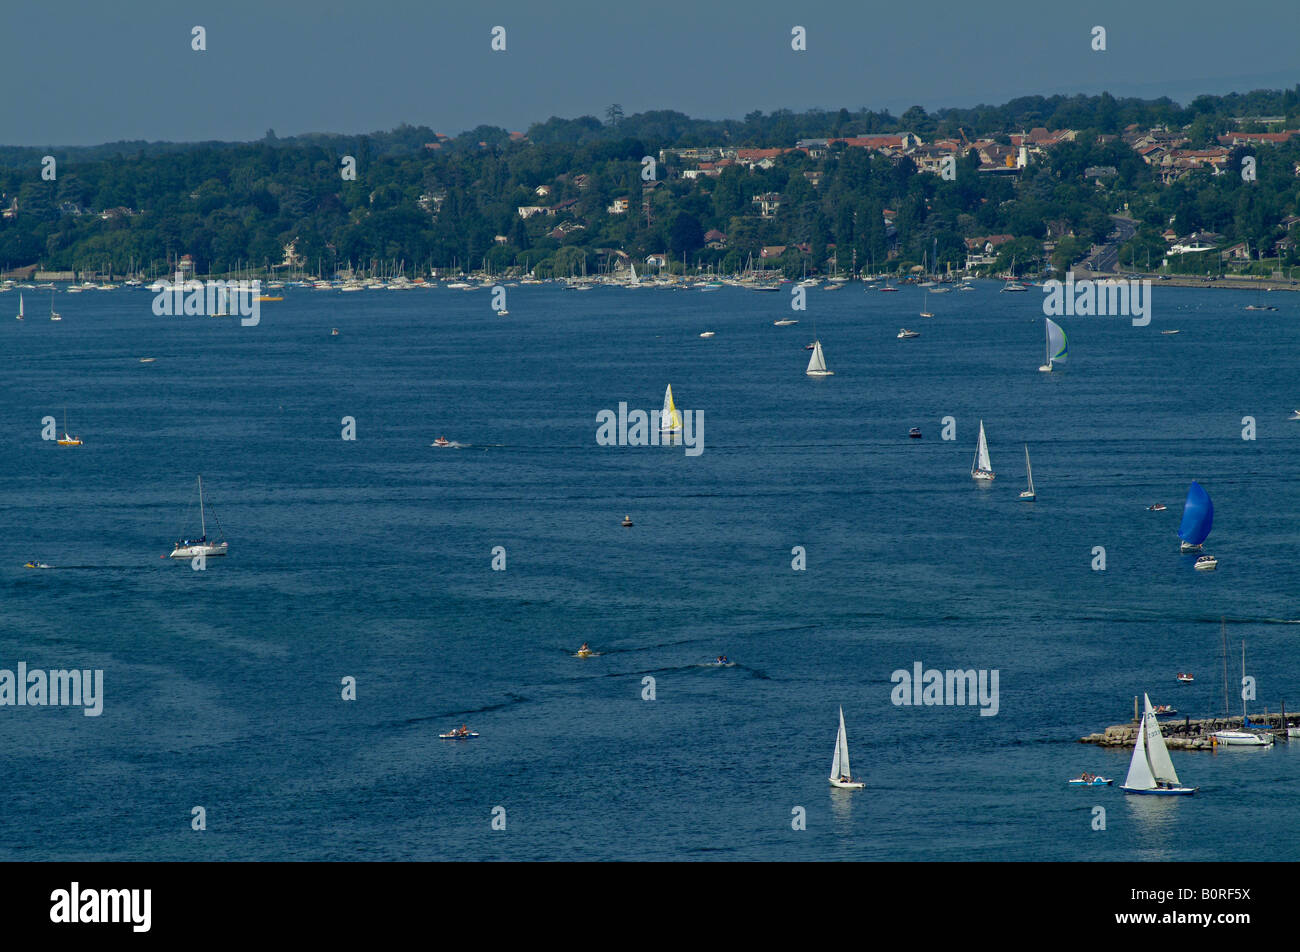 Lake Geneva with sailing boats. View from cathedral. Switzerland. Europe. - Stock Image